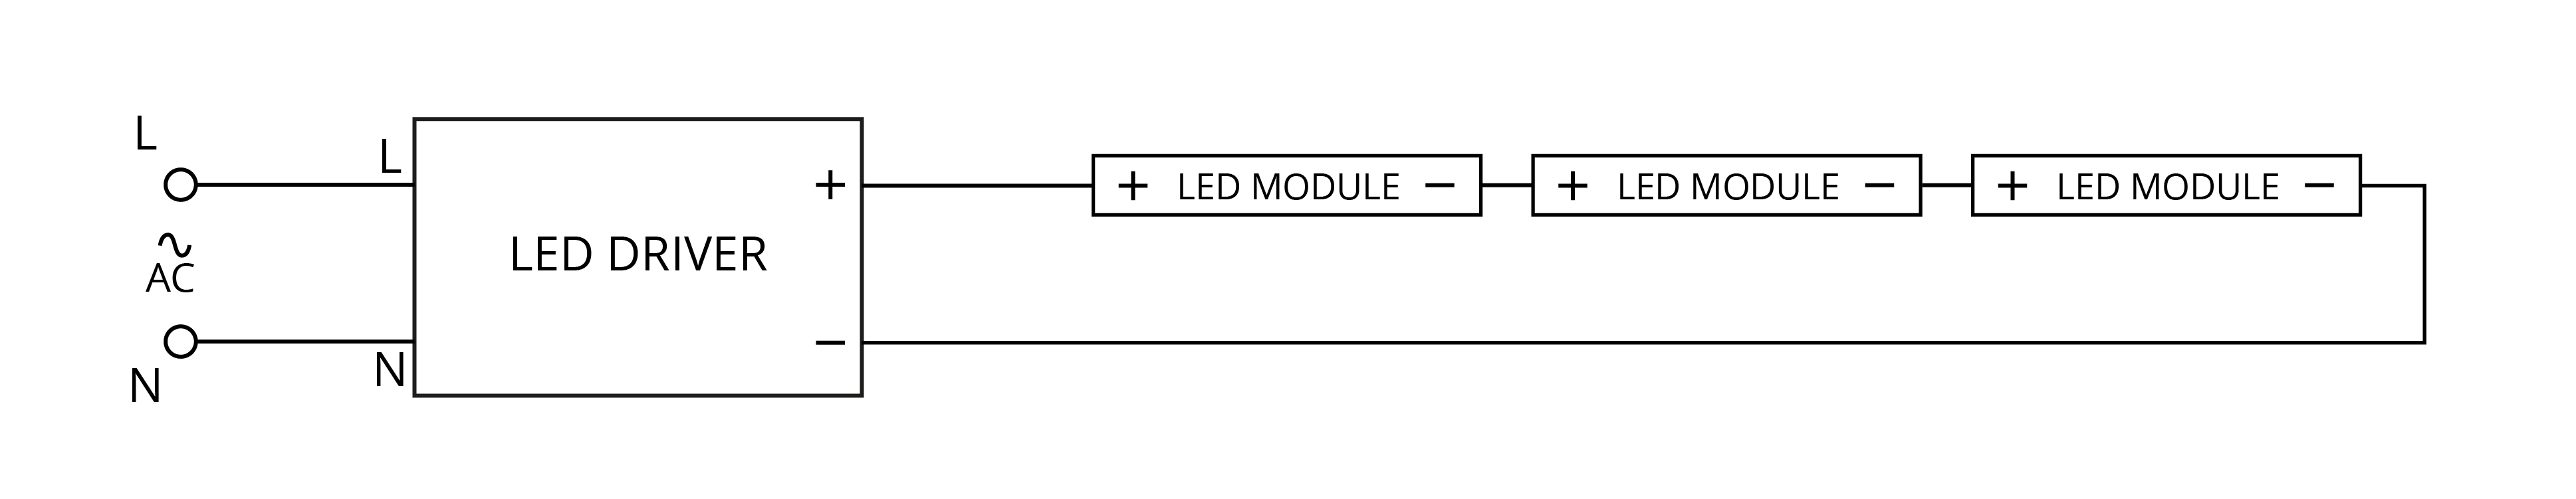 How to Connect LED Modules into AC Network - Arrant-Light Blog